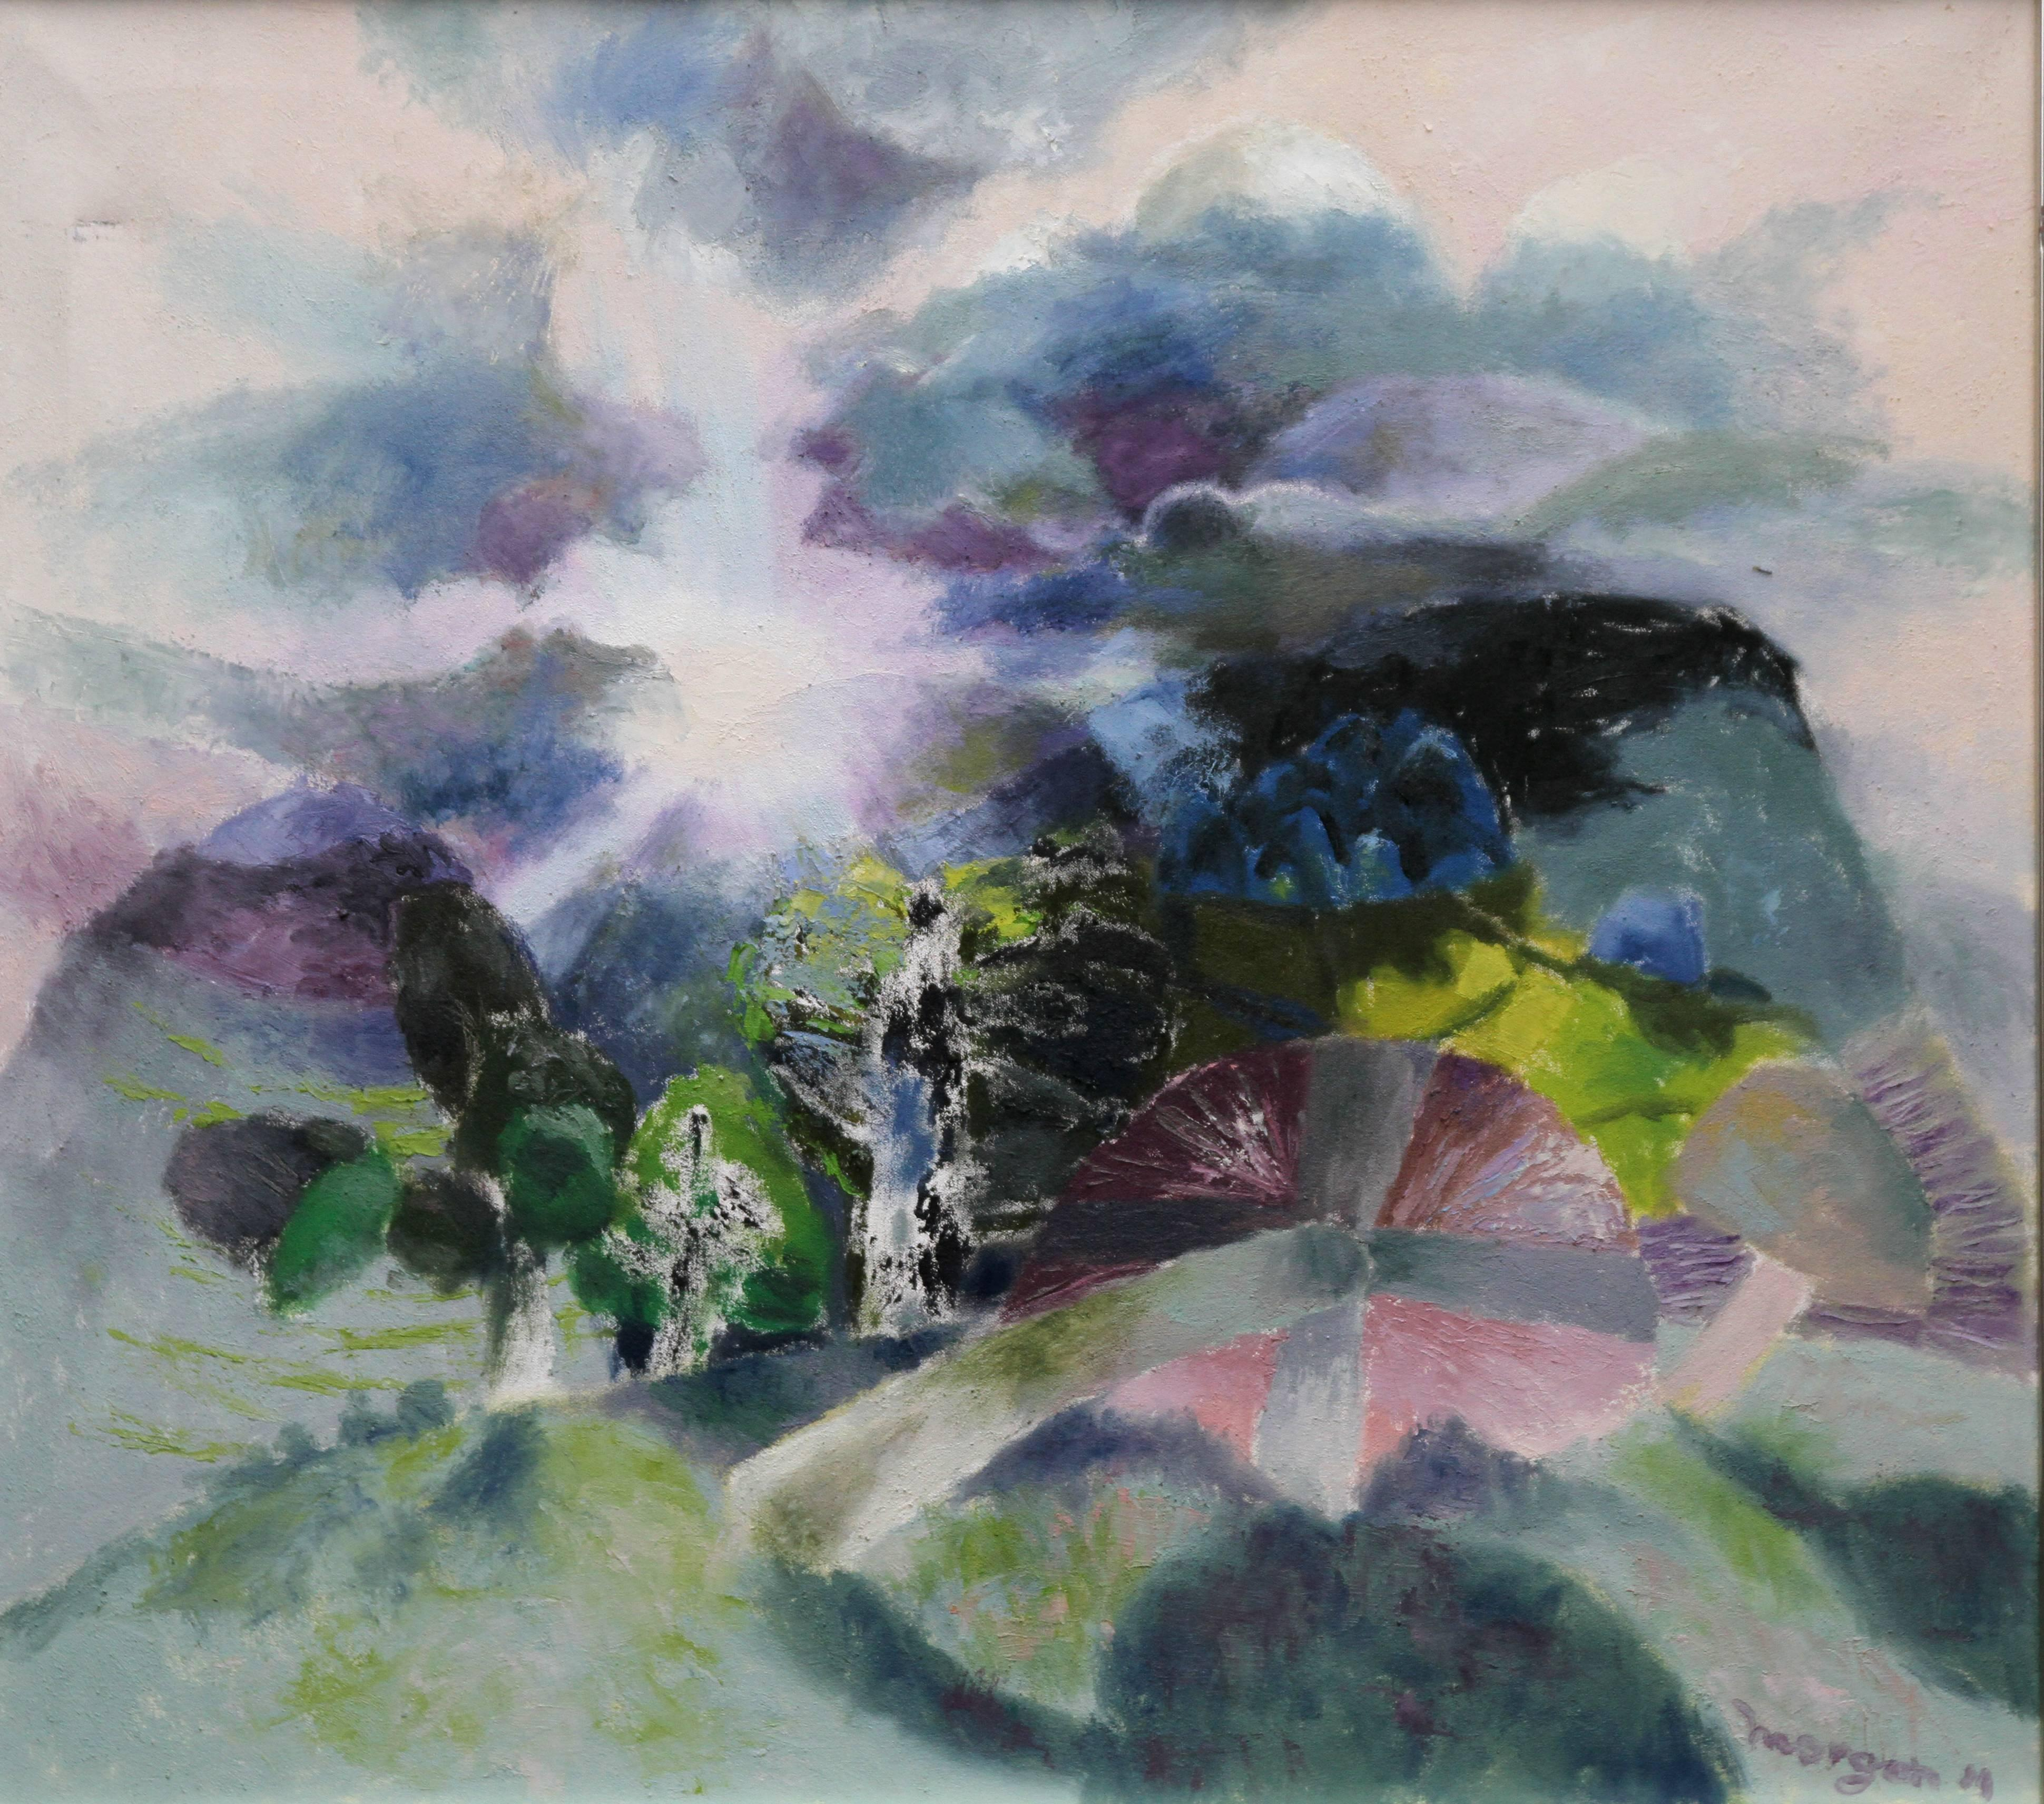 Landscape with Mushrooms - Welsh art Abstract 1985 oil painting field nature